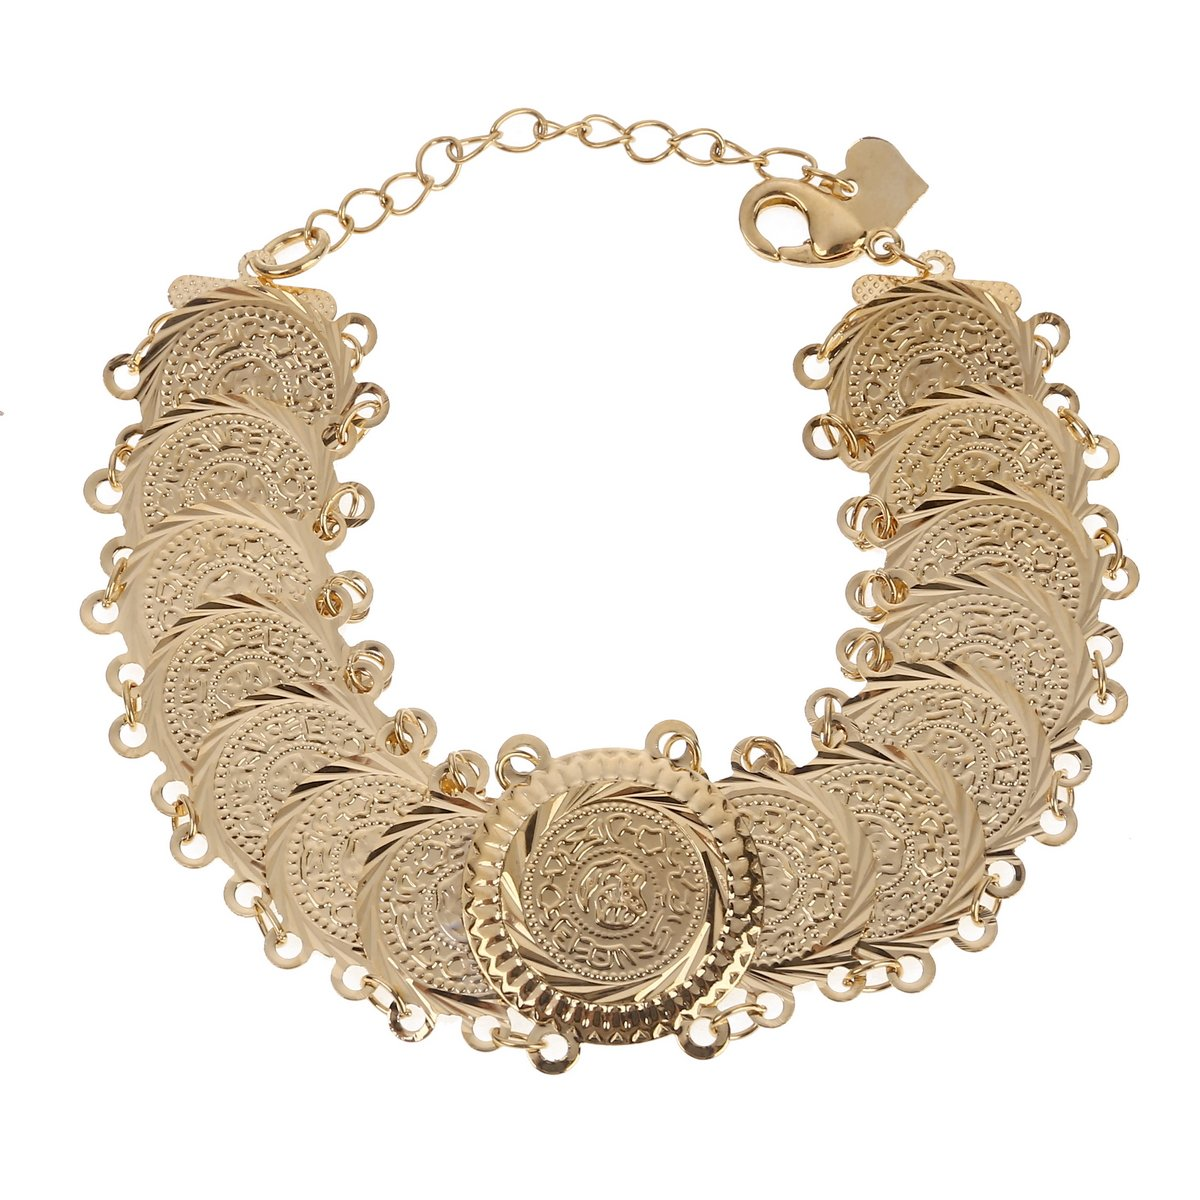 Arab Bracelet Gold Color Coins Bangle Islam Middle East Chain Jewelry Africa Gifts Ethiopian Gold Jewelry Br-001